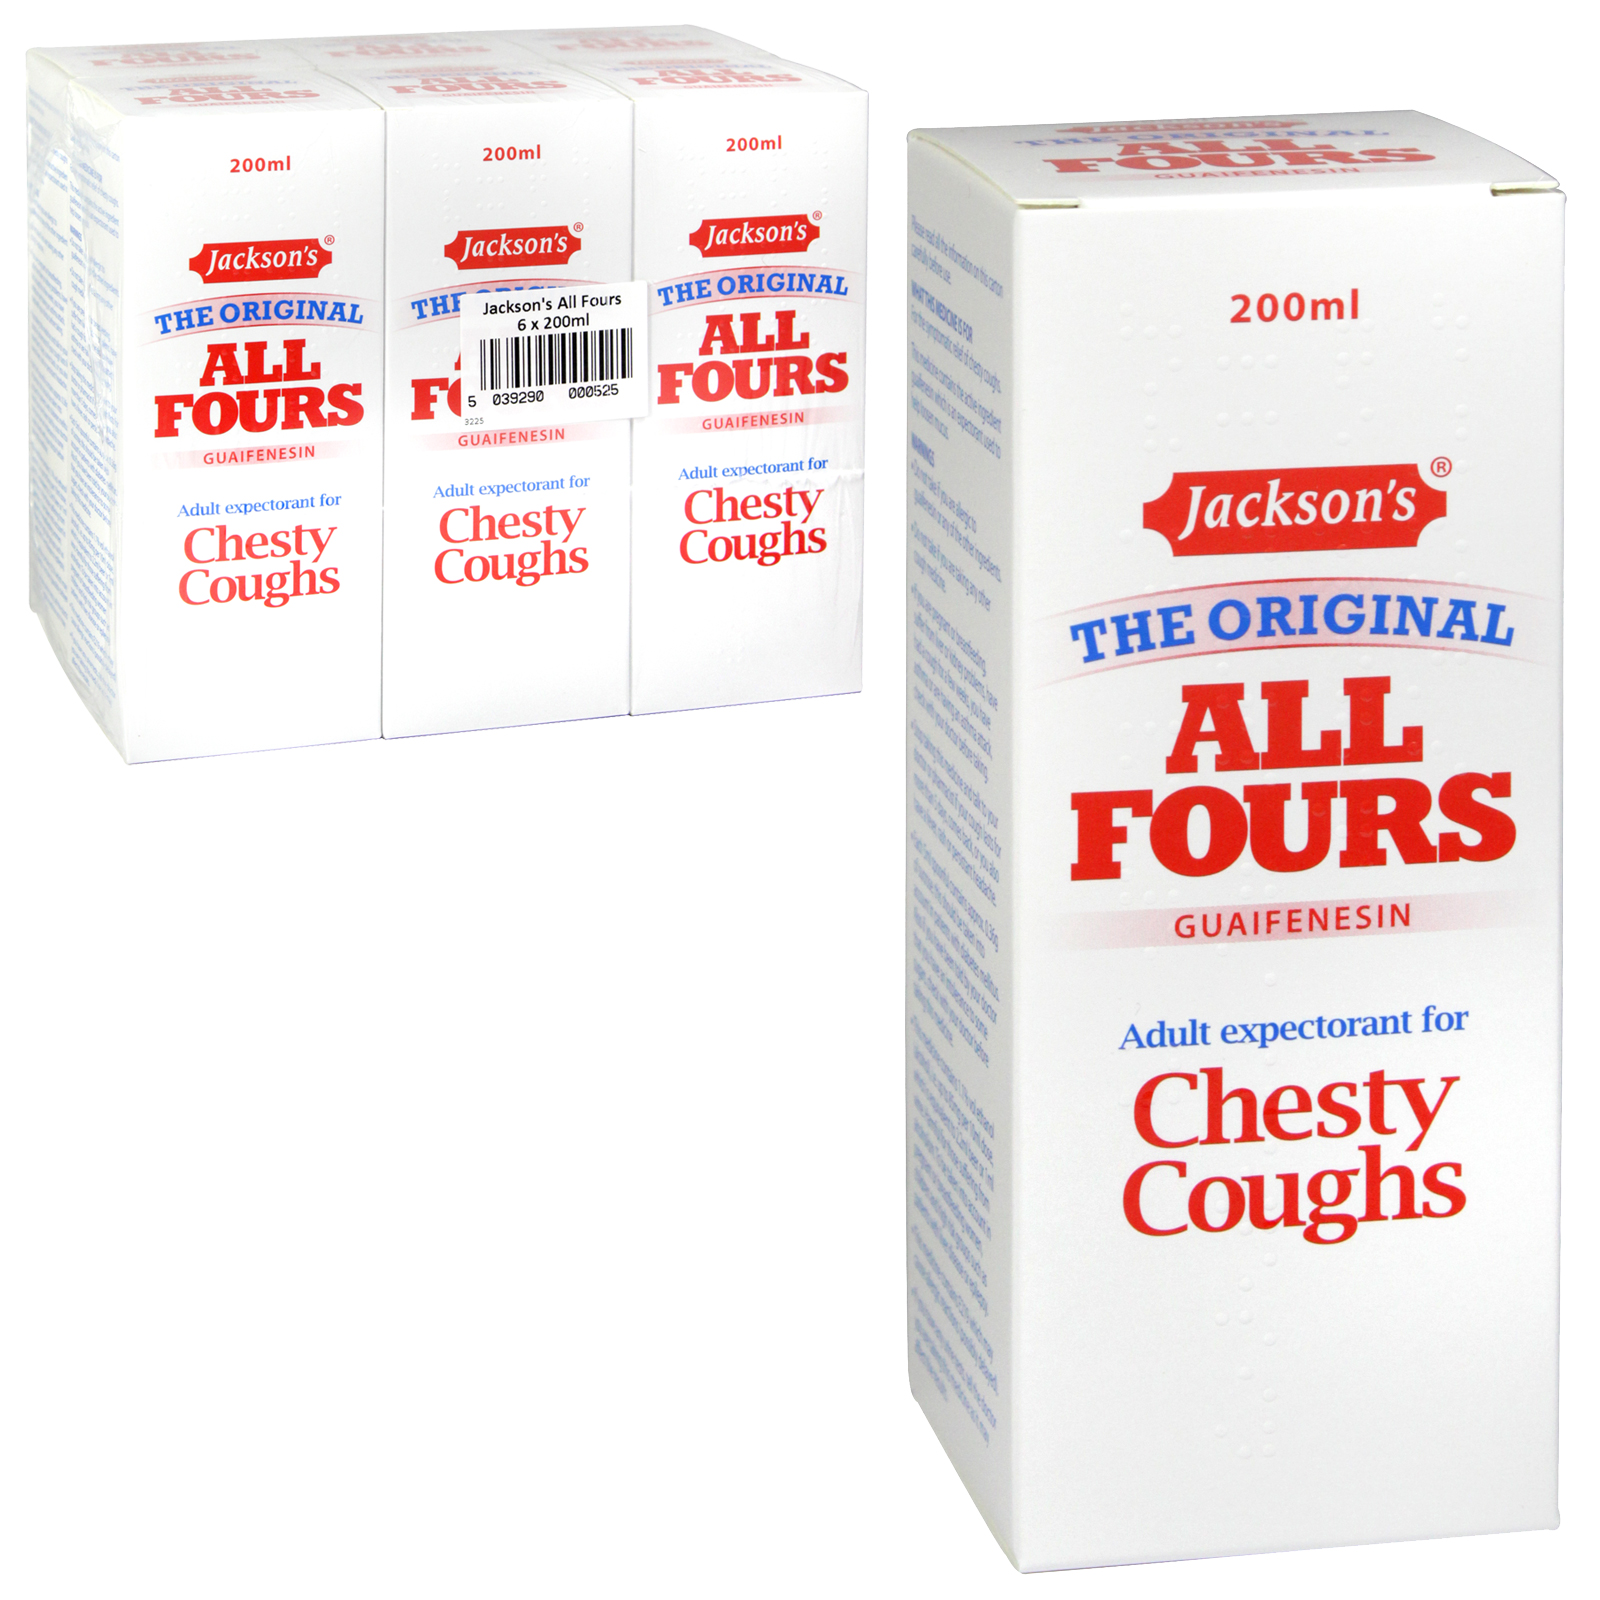 JACKSONS ALL FOURS CHESTY COUGH 200M X6 (NON RETURNABLE)